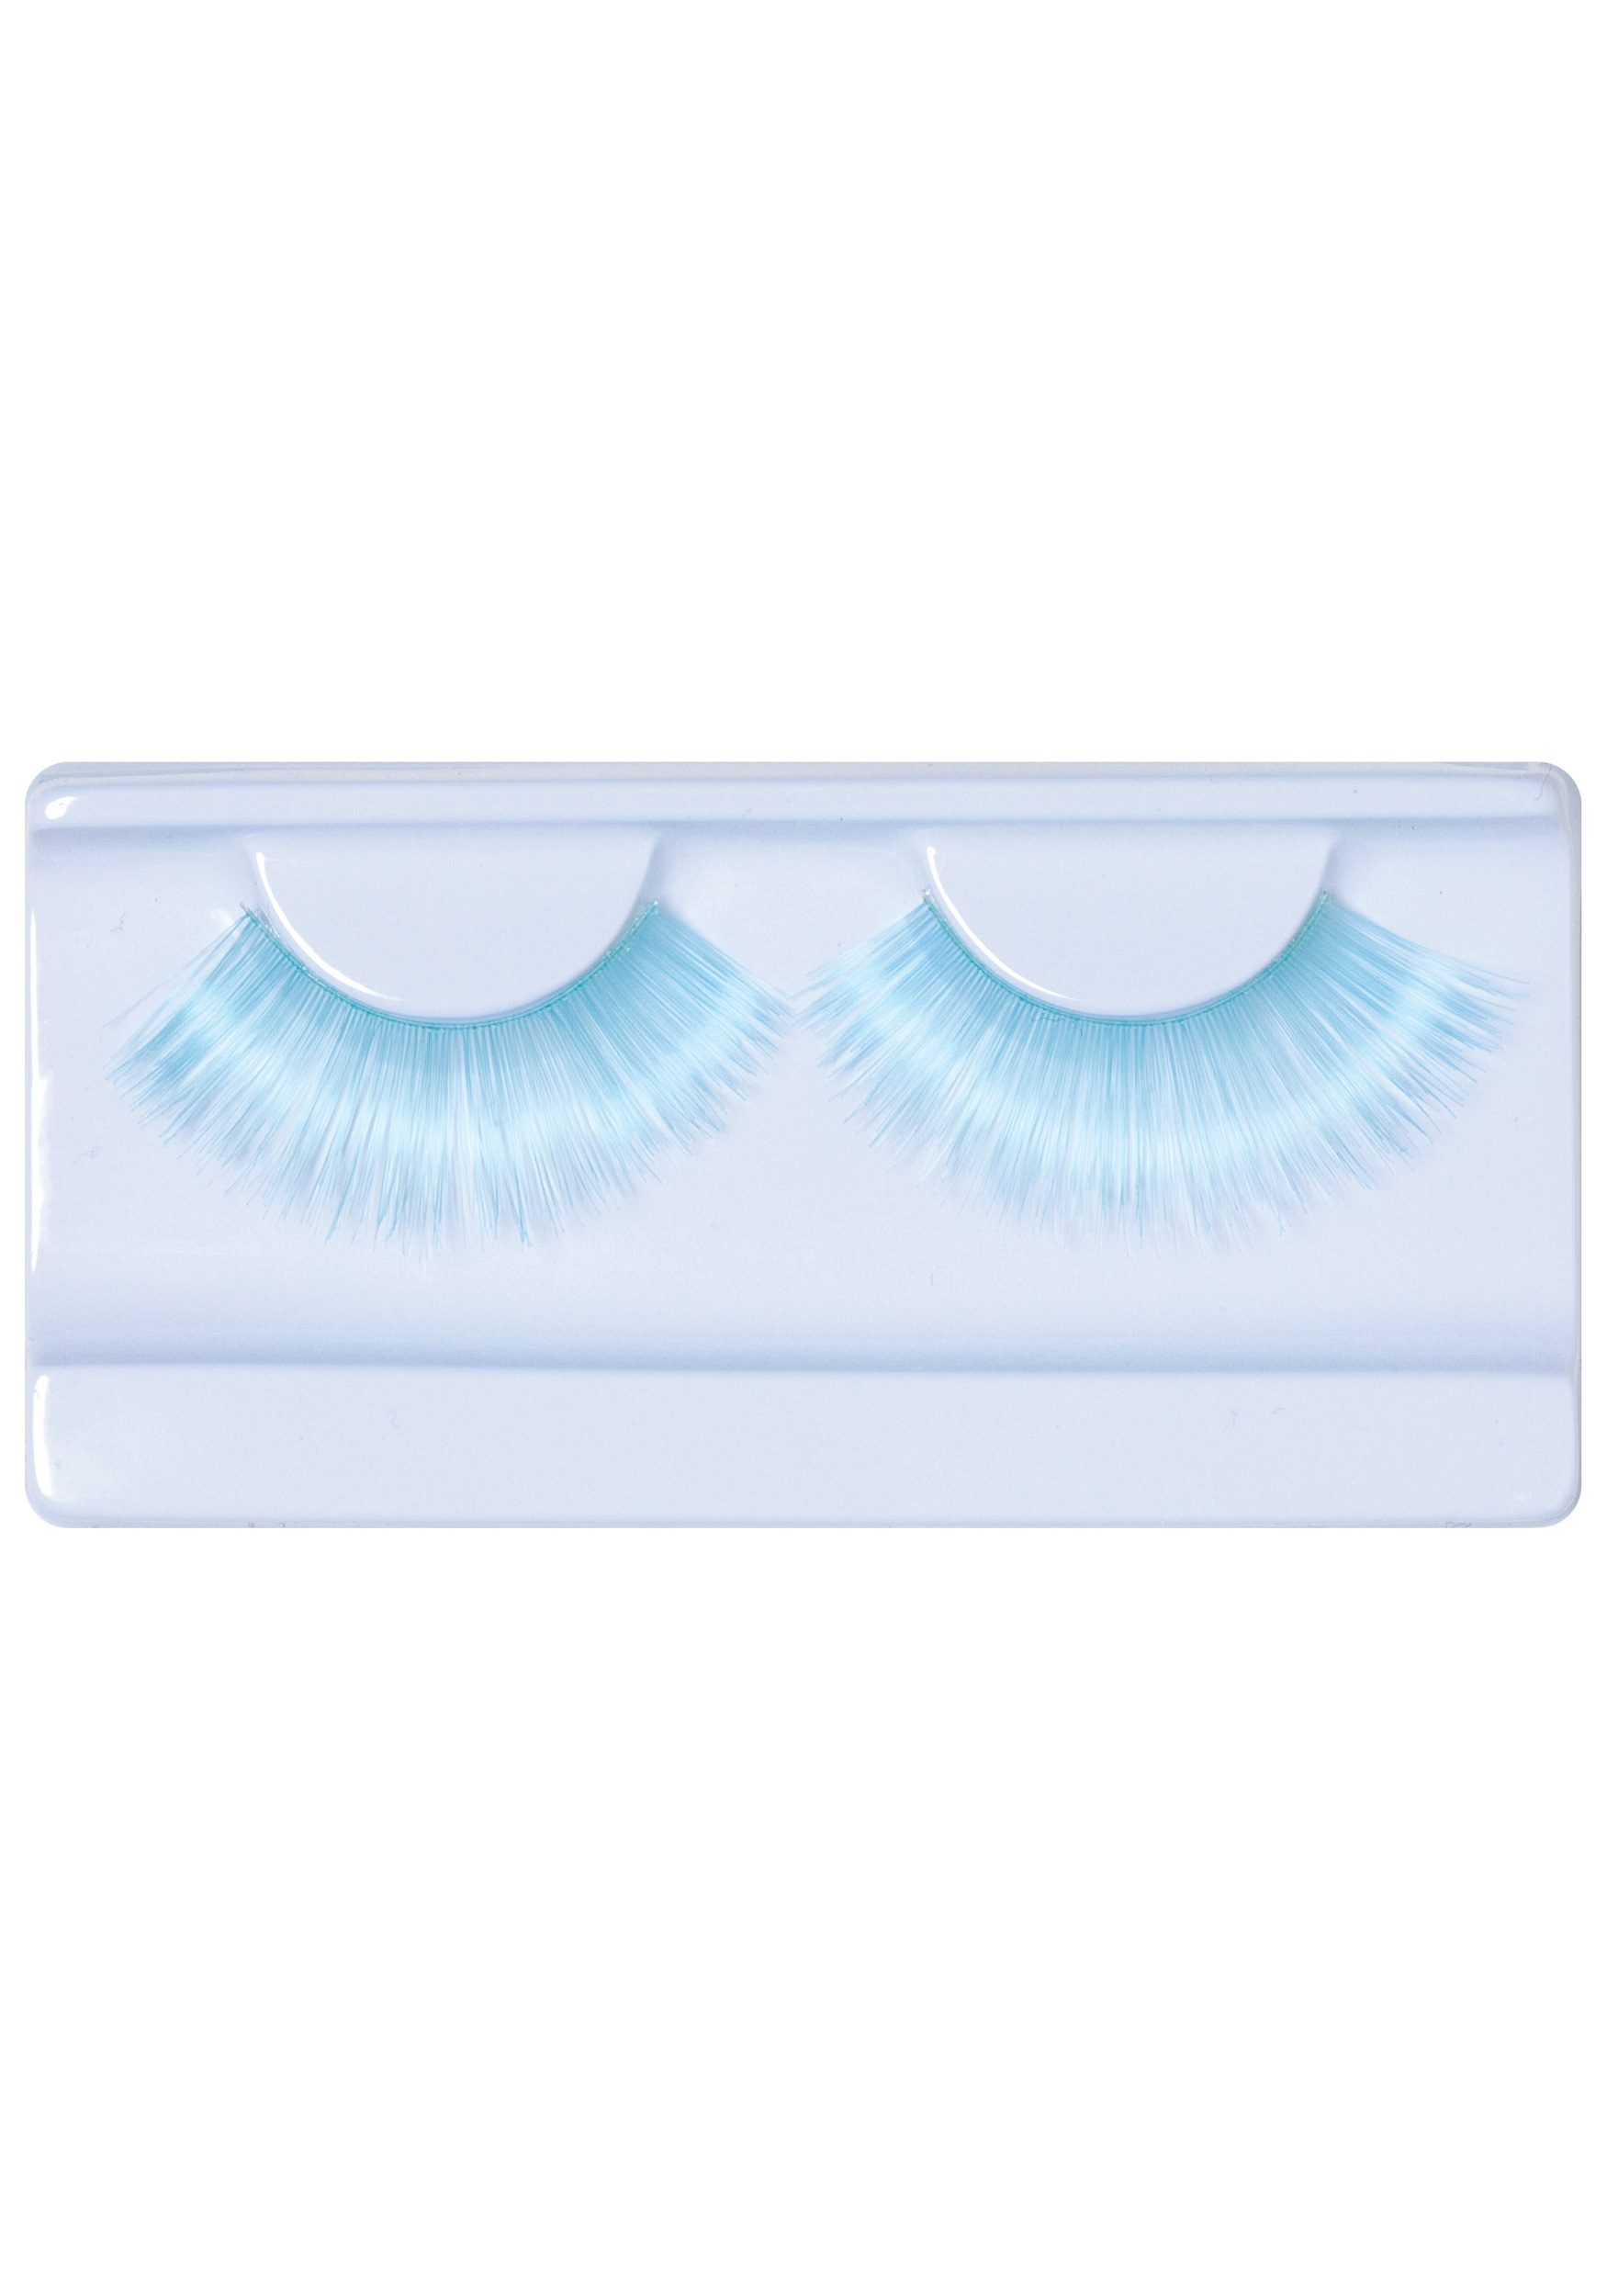 Sky Blue Crayola Crayon Eyelashes - Crayon Accessories, Funny Costumes